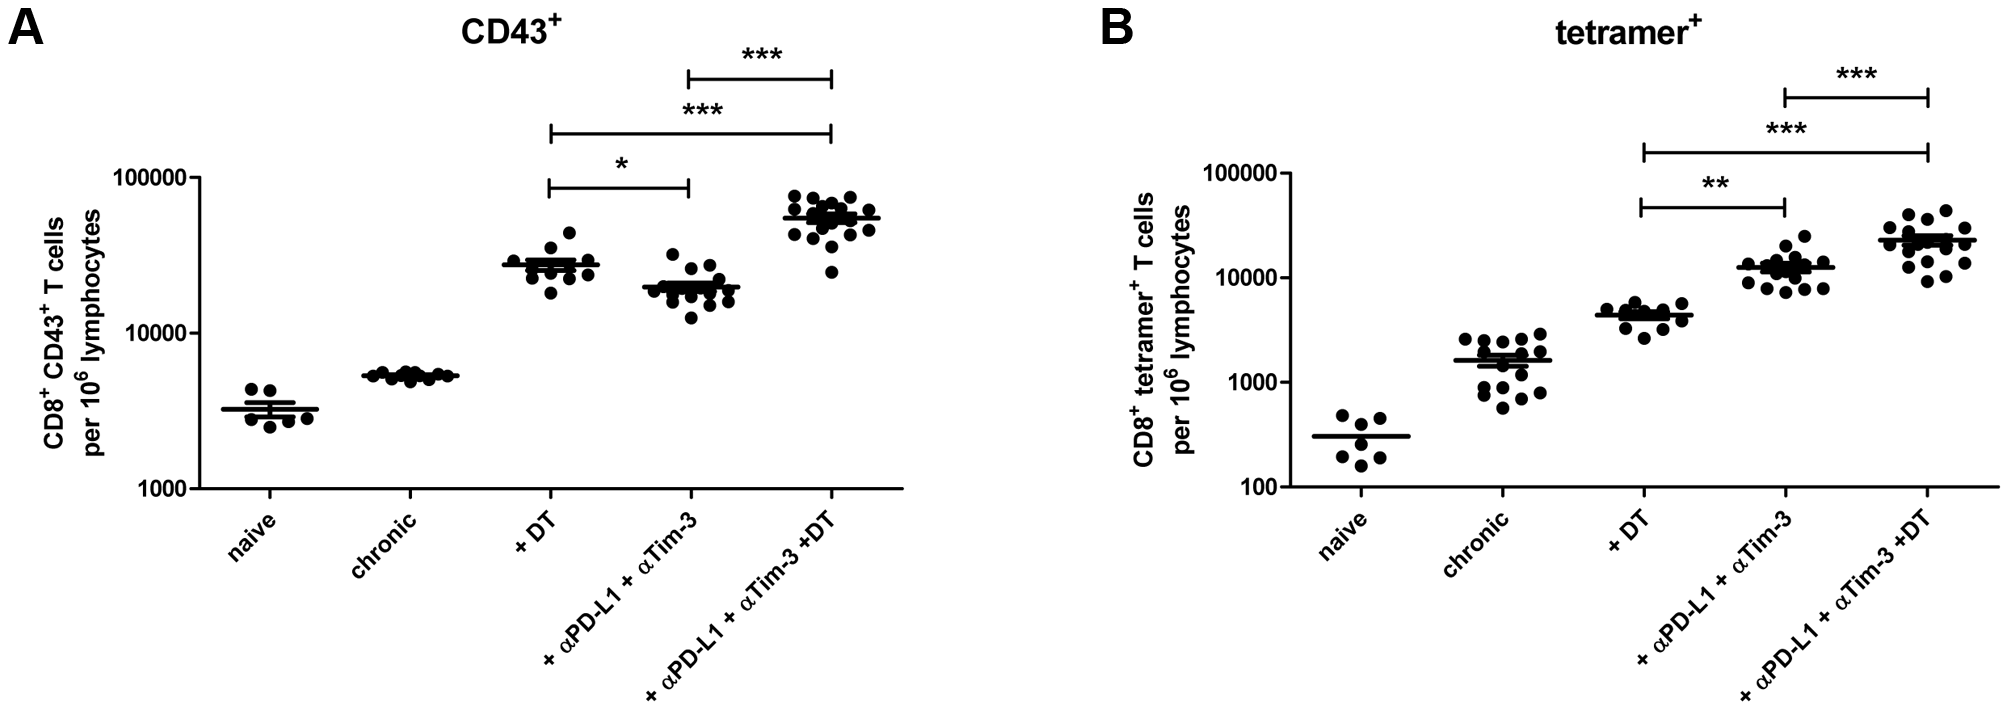 CD8<sup>+</sup> T cell functions after Treg depletion and/or inhibitory pathway blockage in chronically infected mice.